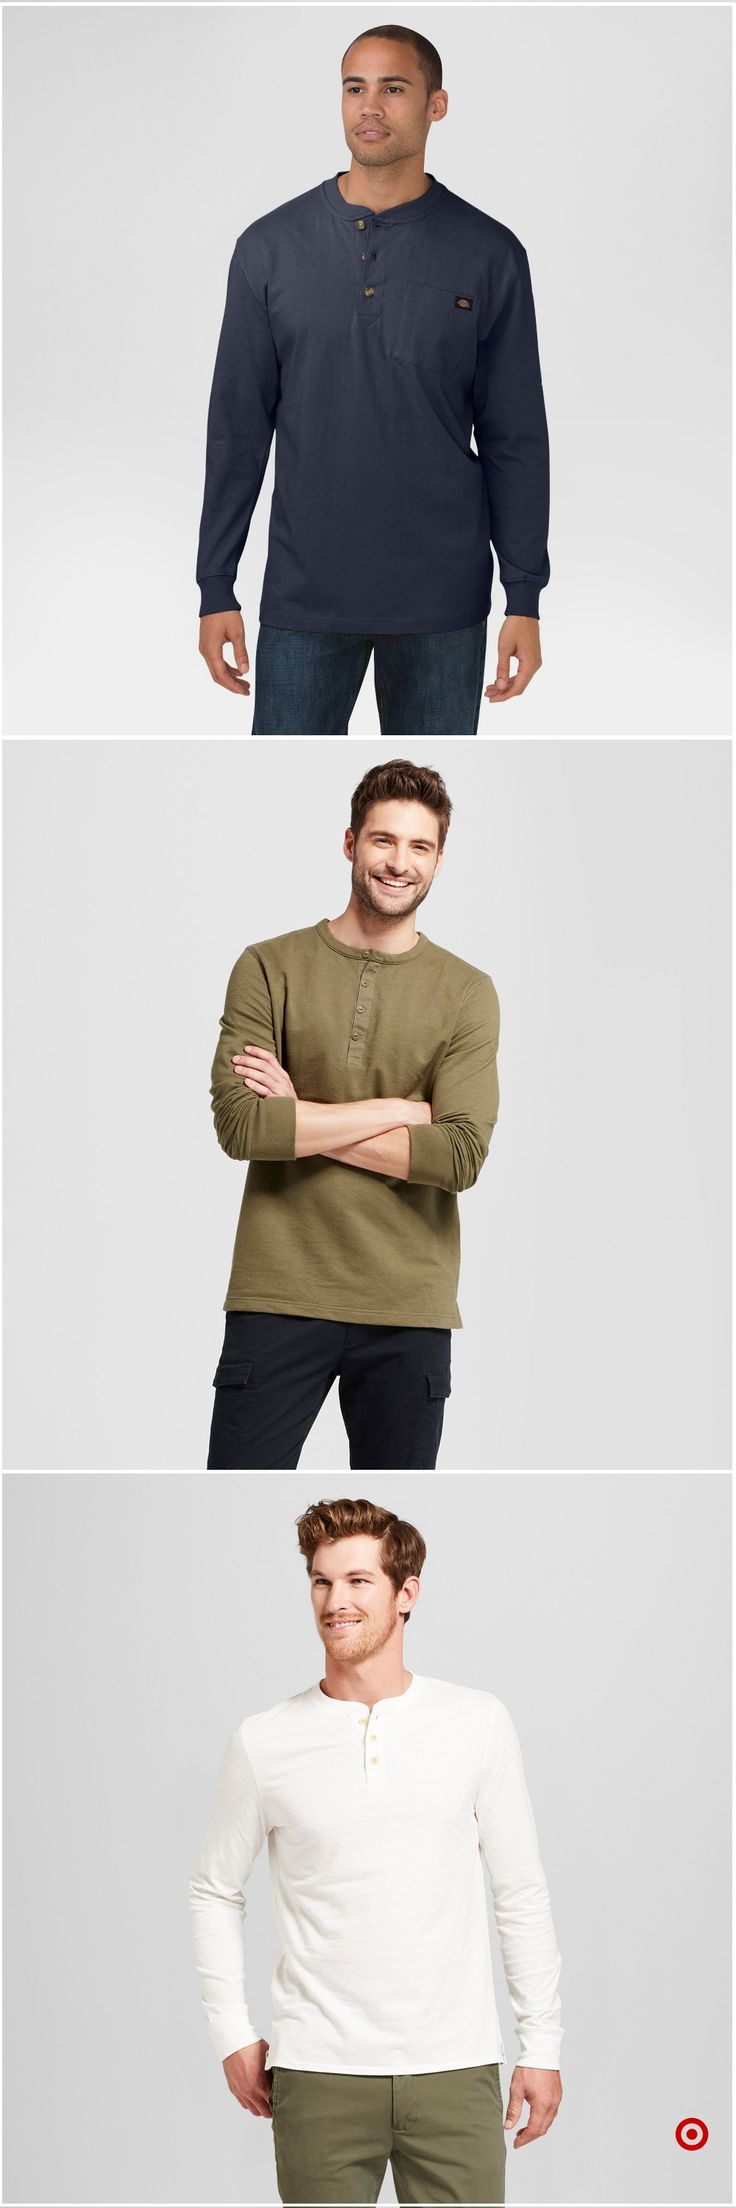 Shop Target for henley shirts you will love at great low prices. Free shipping on orders of $35+ or free same-day pick-up in store.